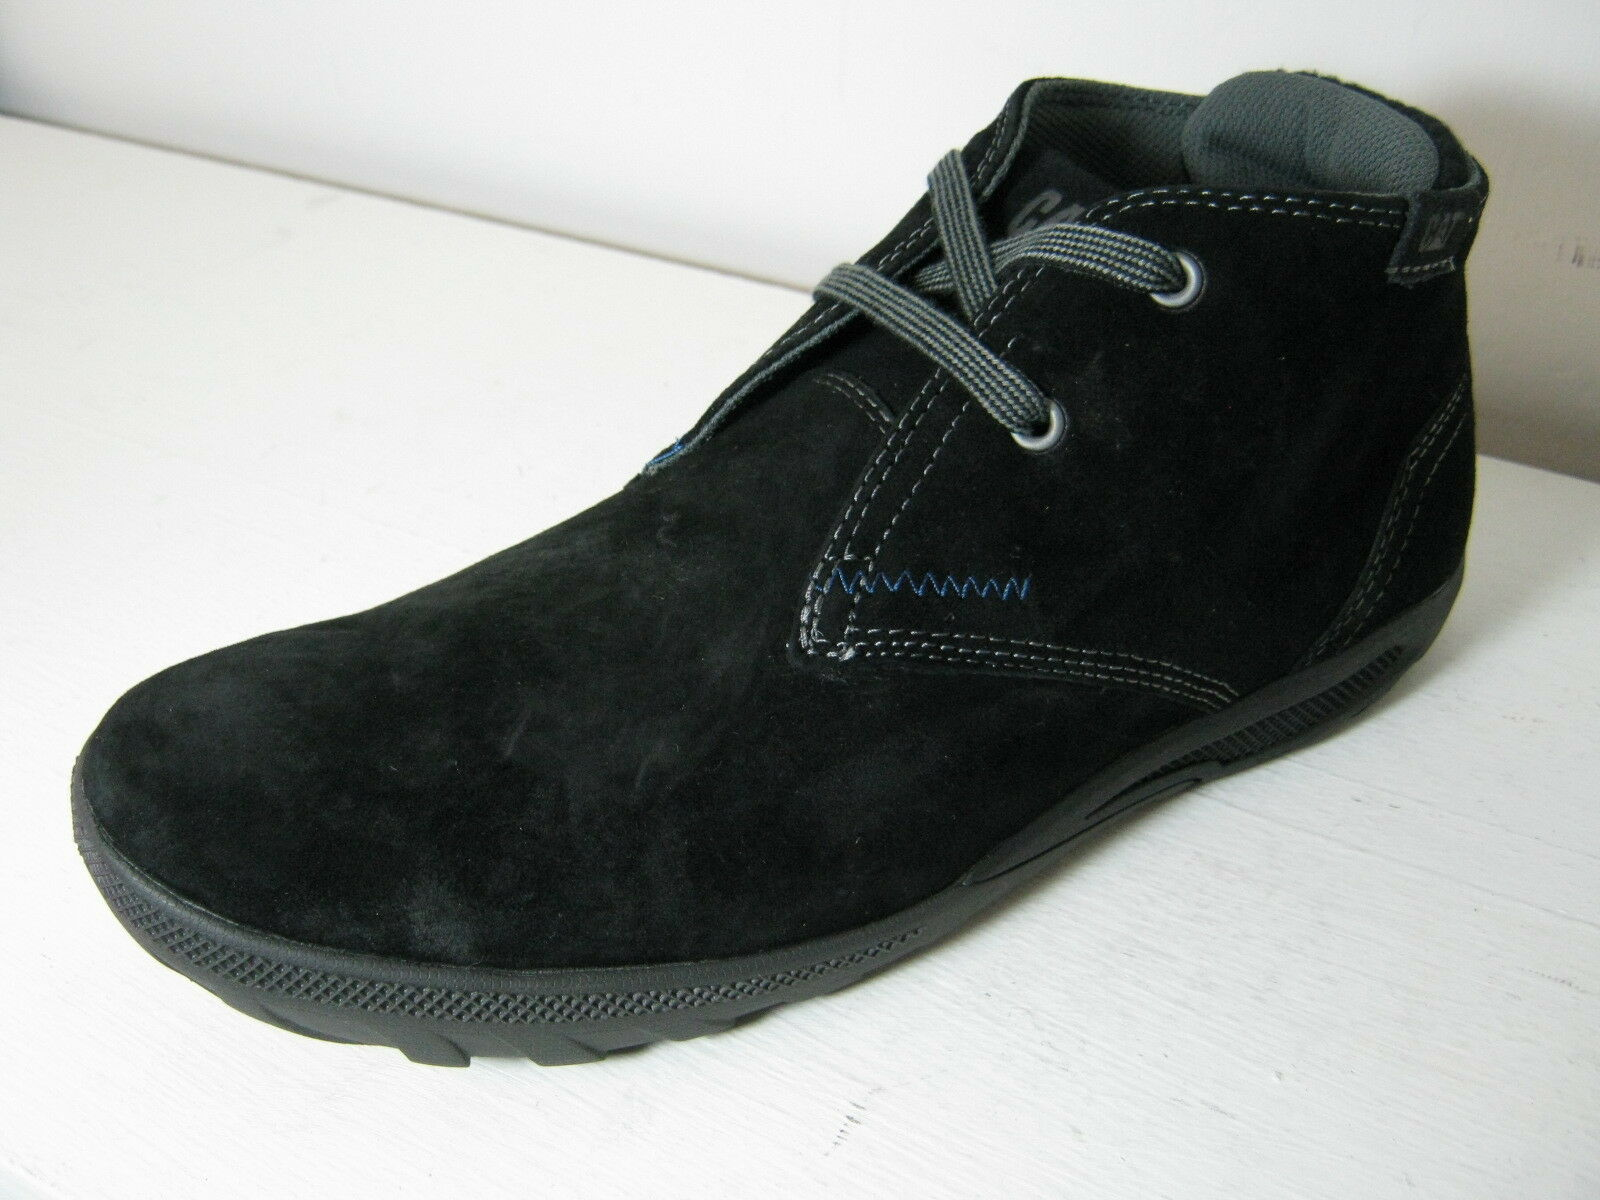 Hombre Hombre Hombre Caterpillar Crump Mid Negro, Peat Or Gull Gris Suede Leather Lace Up botas e22267